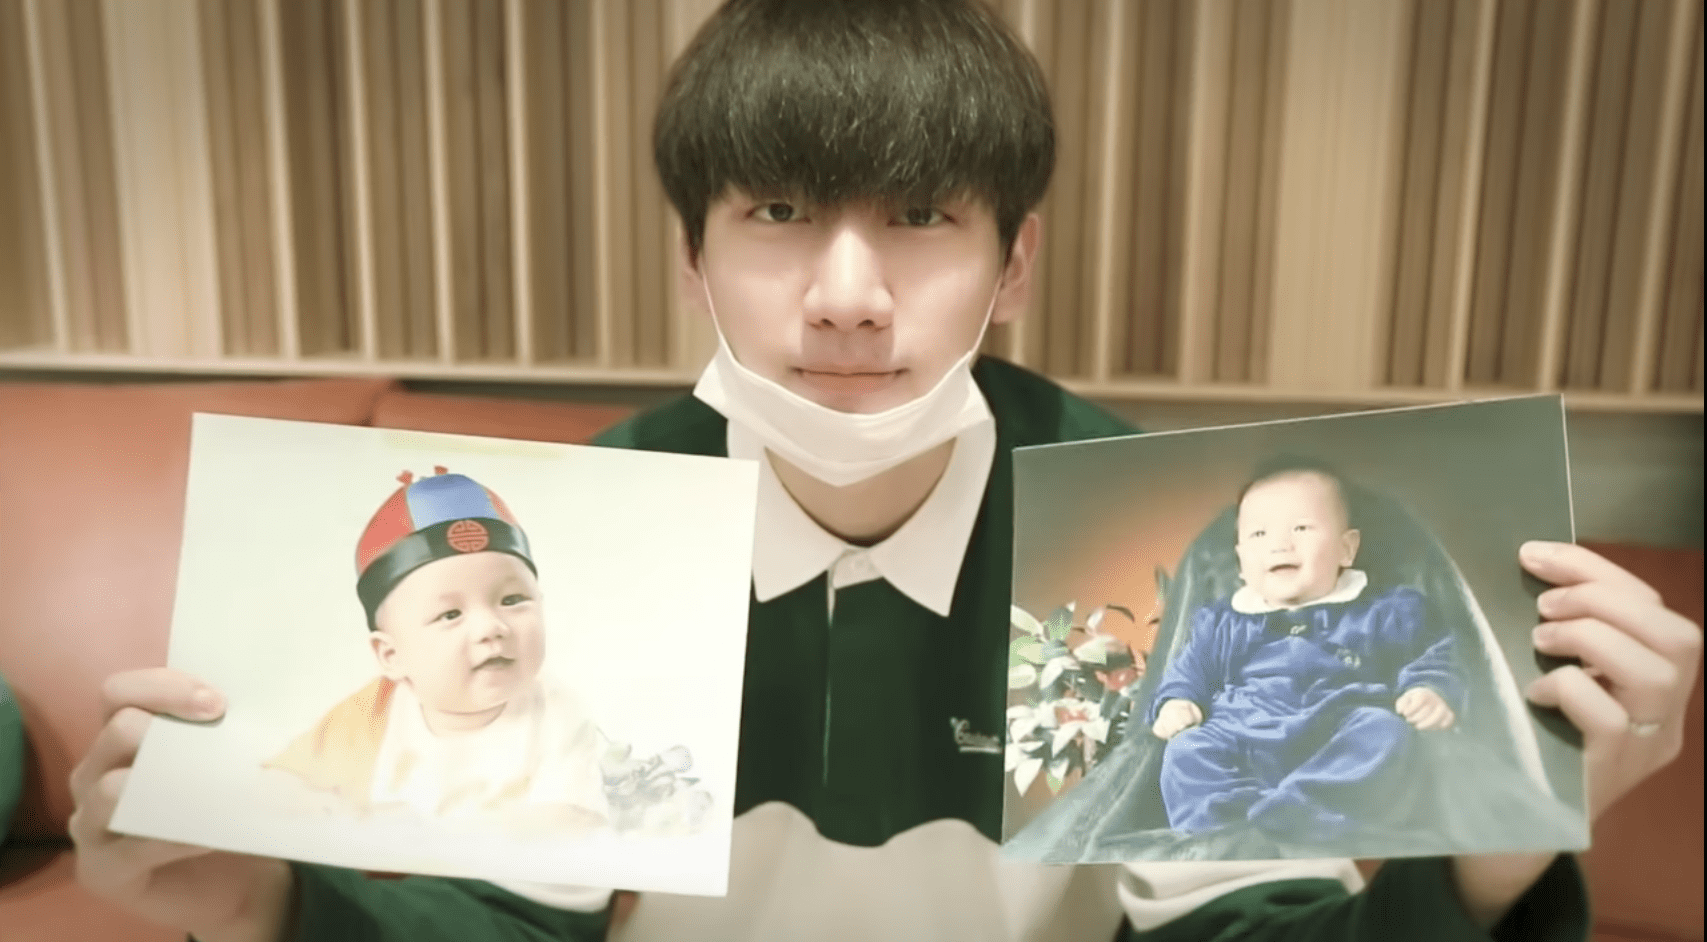 Watch: VIXXs Hyuk Takes Fans On A Trip Down Memory Lane With Ed Sheeran Cover For His Birthday